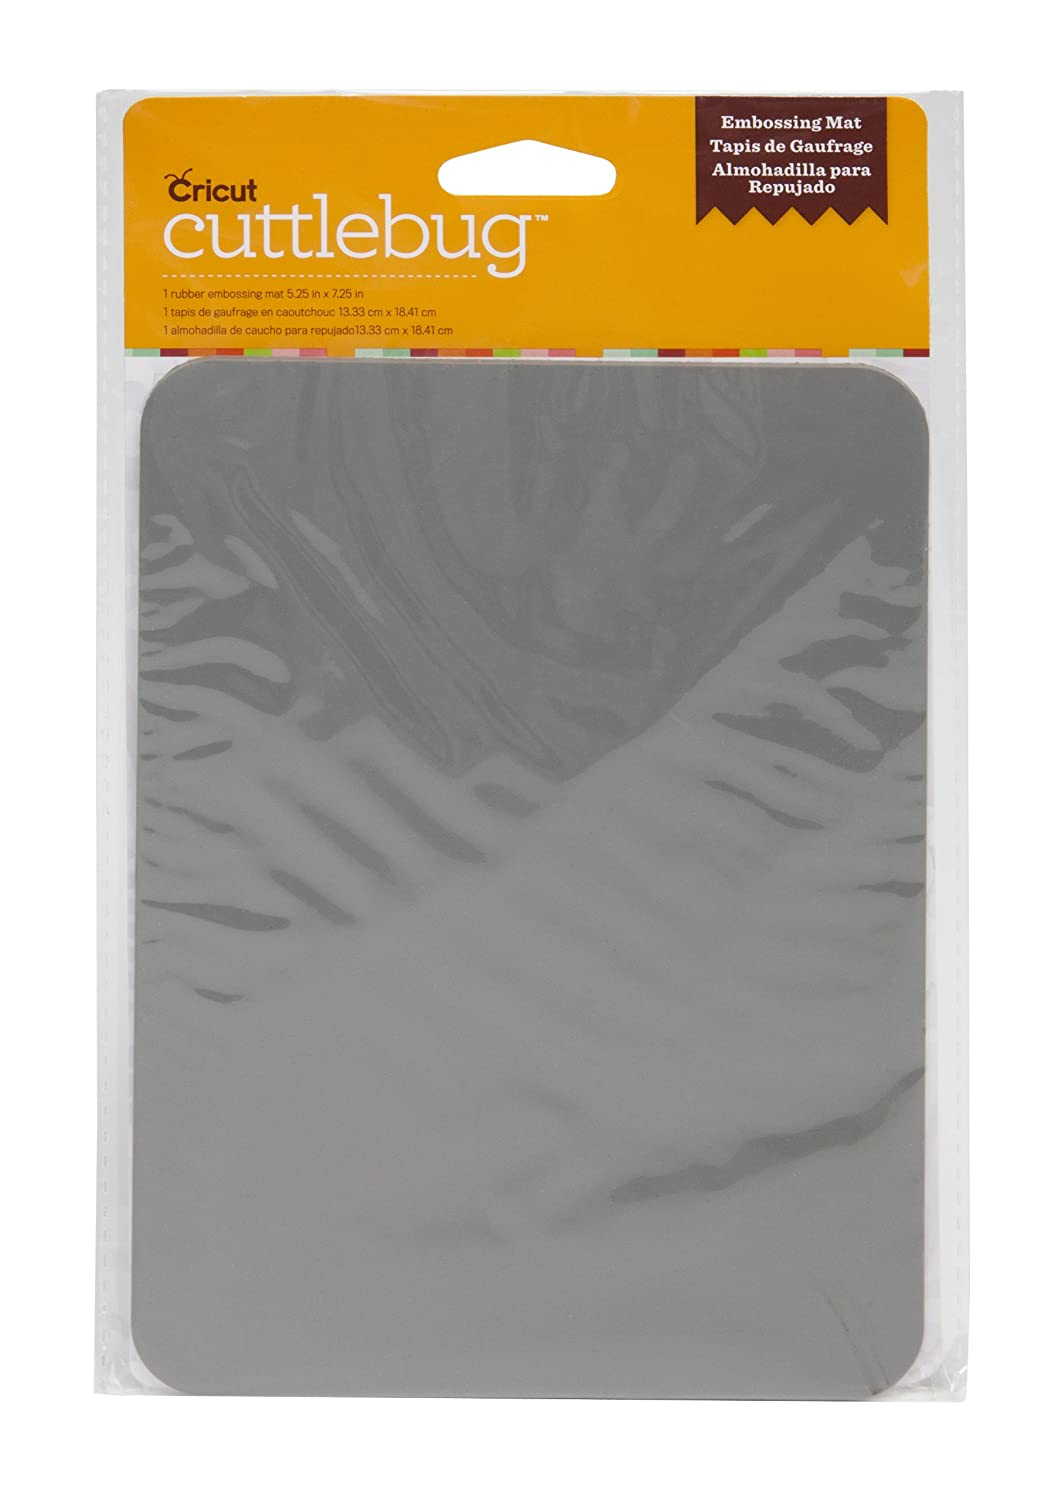 Amazon.com: Cuttlebug Cricut Cut and Emboss Dies, Rubber Embossing ...